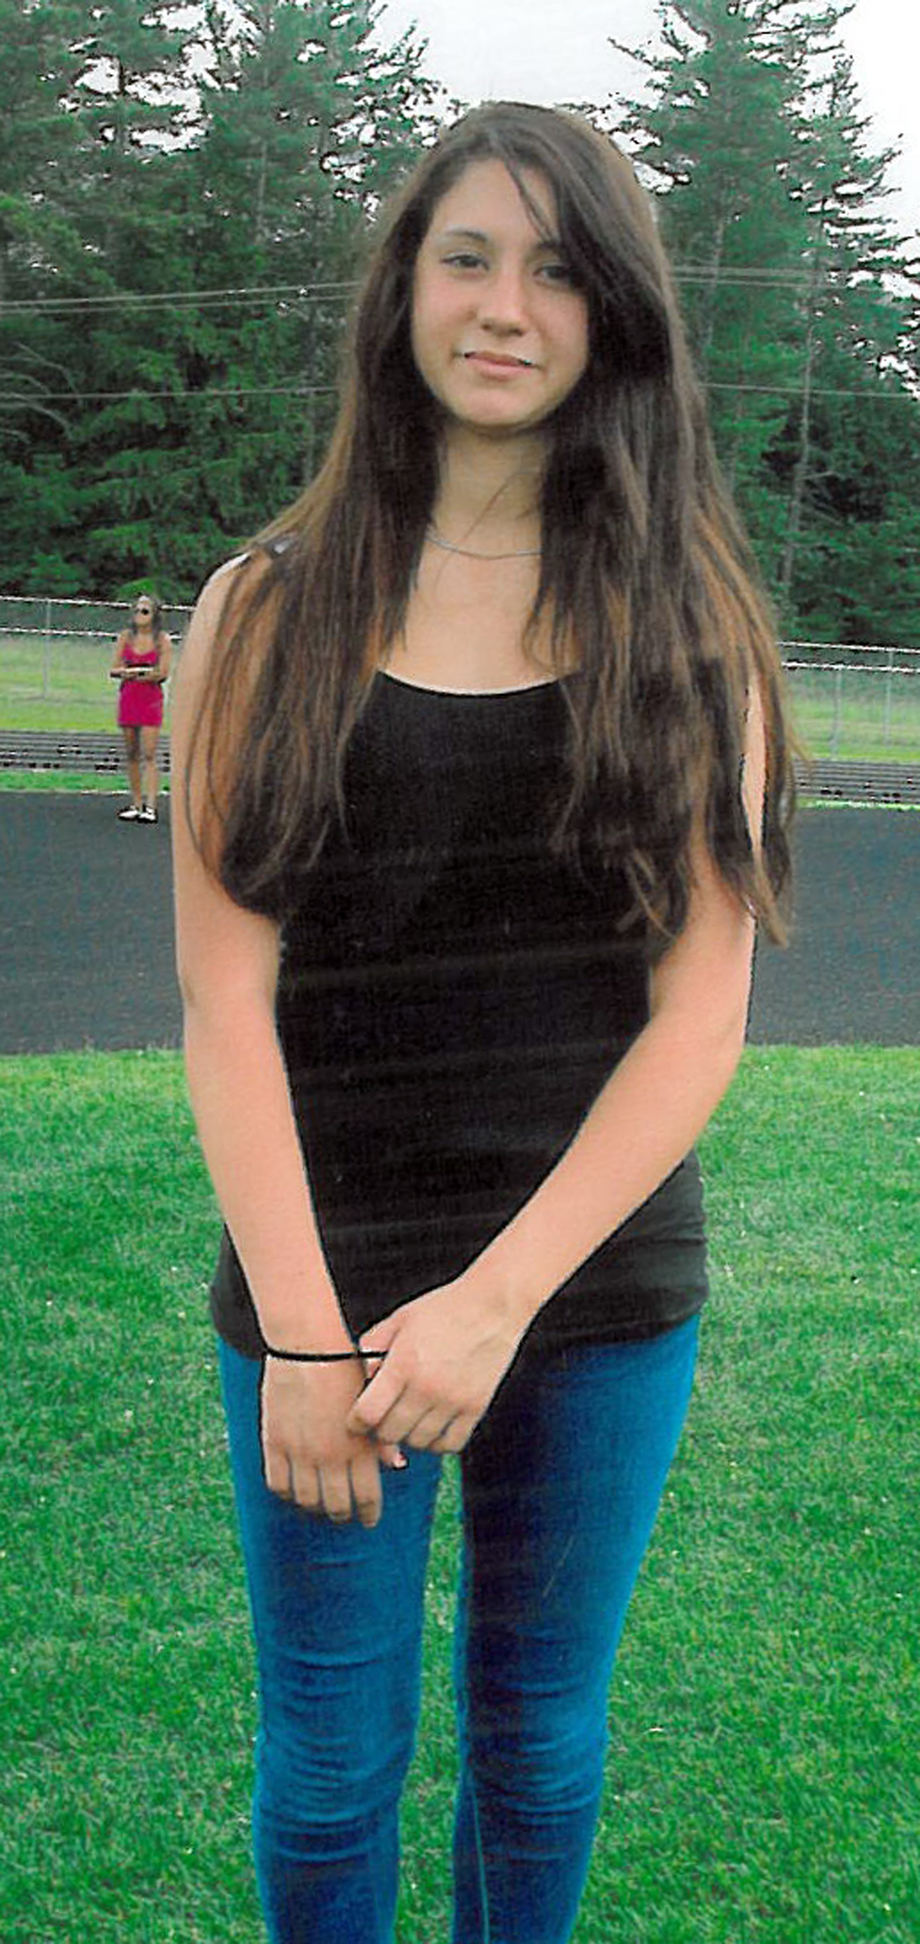 A N.H. Mom's Plea To Missing 15-year-old: Come Home